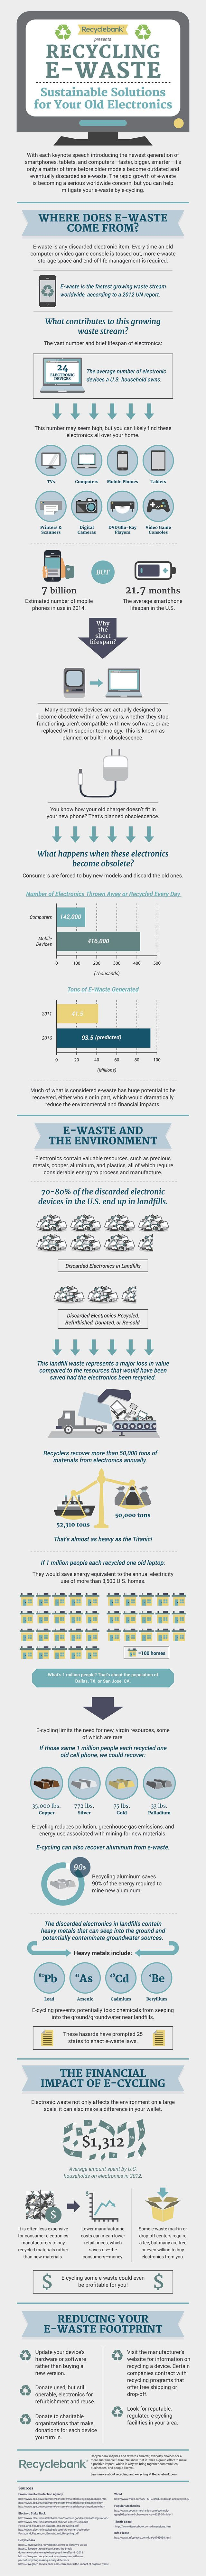 Why bother e-cycling your old electronics? E-waste is the fastest growing waste stream worldwide, and leaving a big impact on the environment and on consumer wallets.